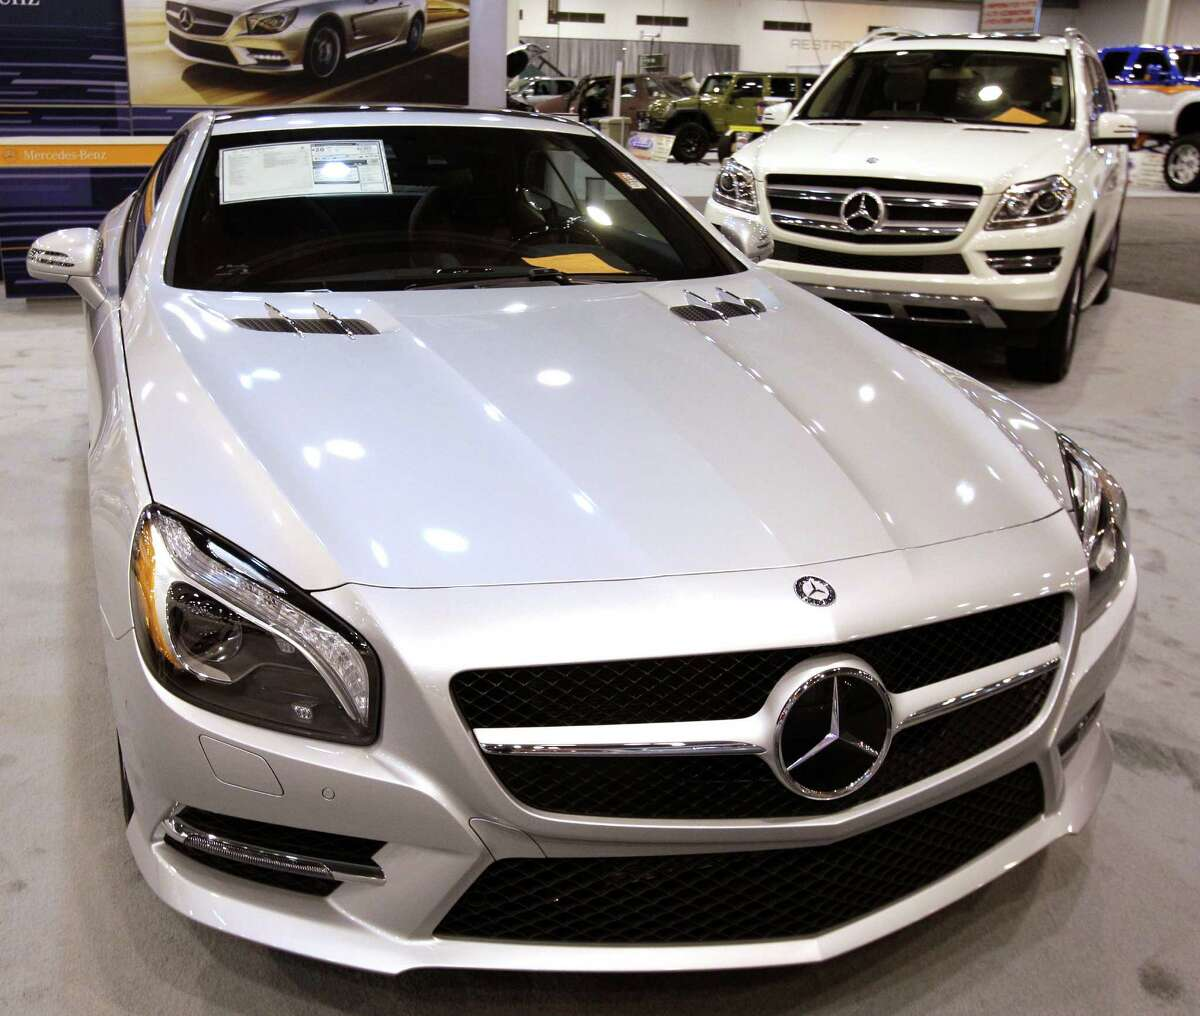 A Mercedes-Benz SL550 Roadster shown at the Houston Auto Show in Reliant Center, Tuesday, Jan. 22, 2013, in Houston. The show runs from Jan. 23 through Jan. 27. ( Melissa Phillip / Houston Chronicle )